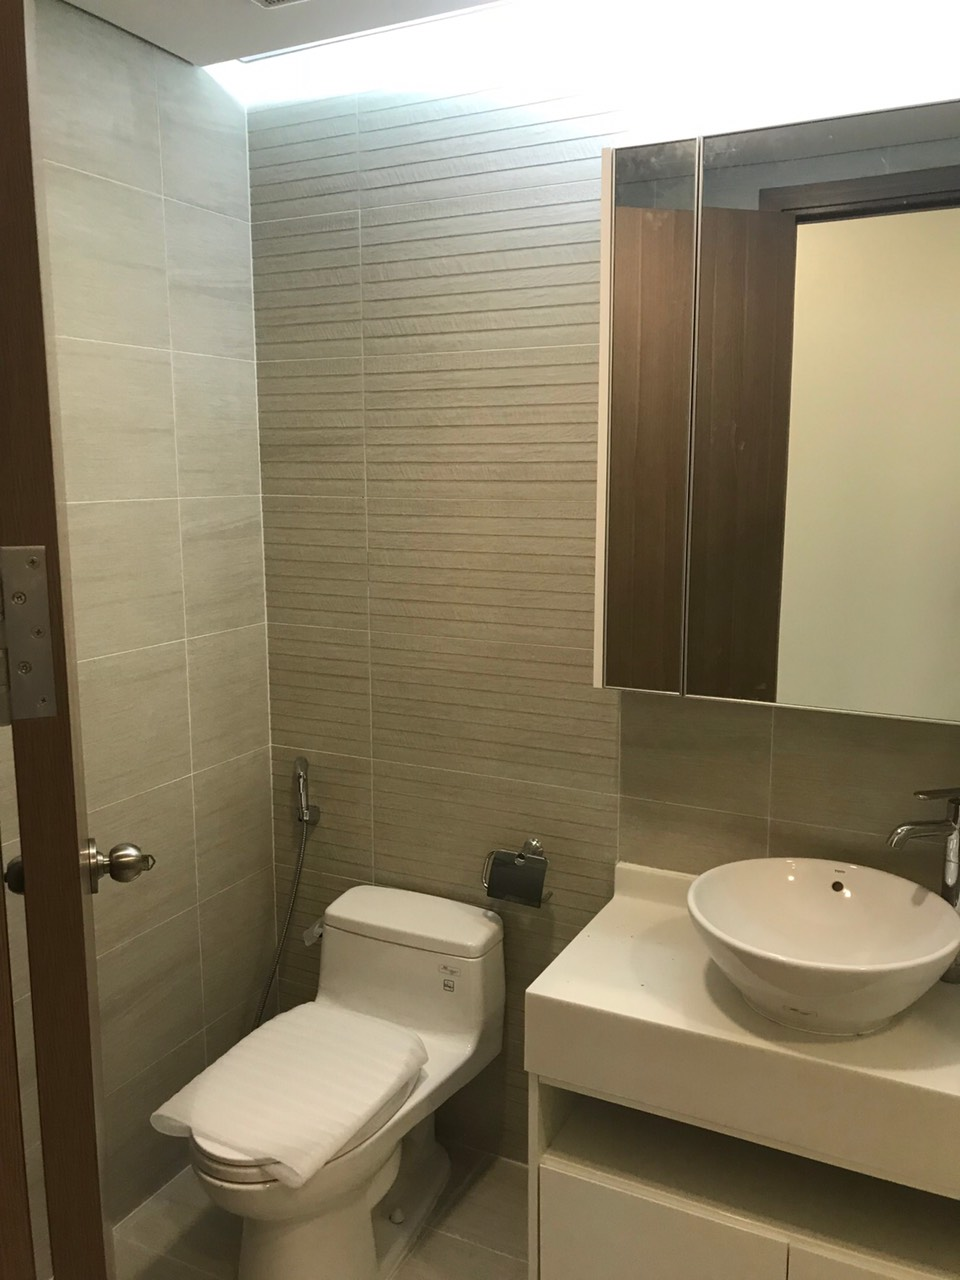 vinhomes central park apartment for rent in binh thanh district hcmc BT105P3673 (6)